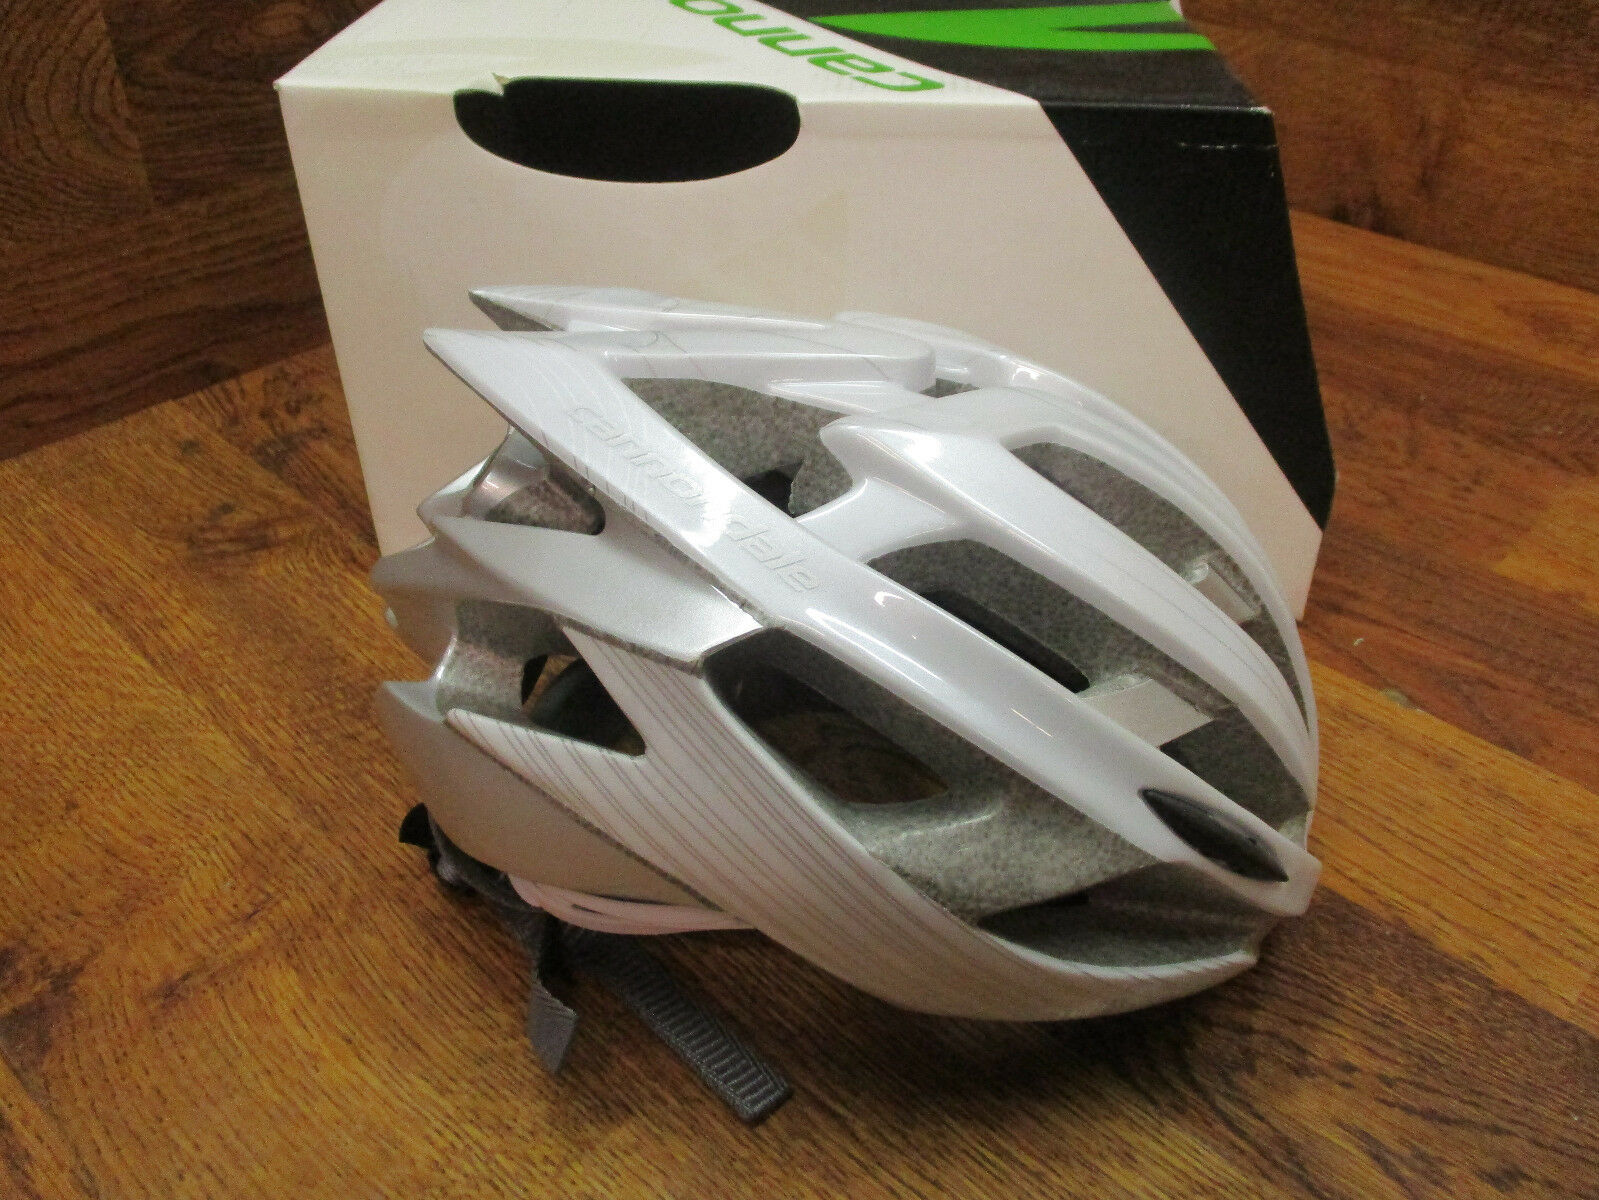 CANNONDALE CYPHER BICYCLE  BIKE CYCLING ROAD HELMET - WHITE - L-XL 58-62 CM  first-class service